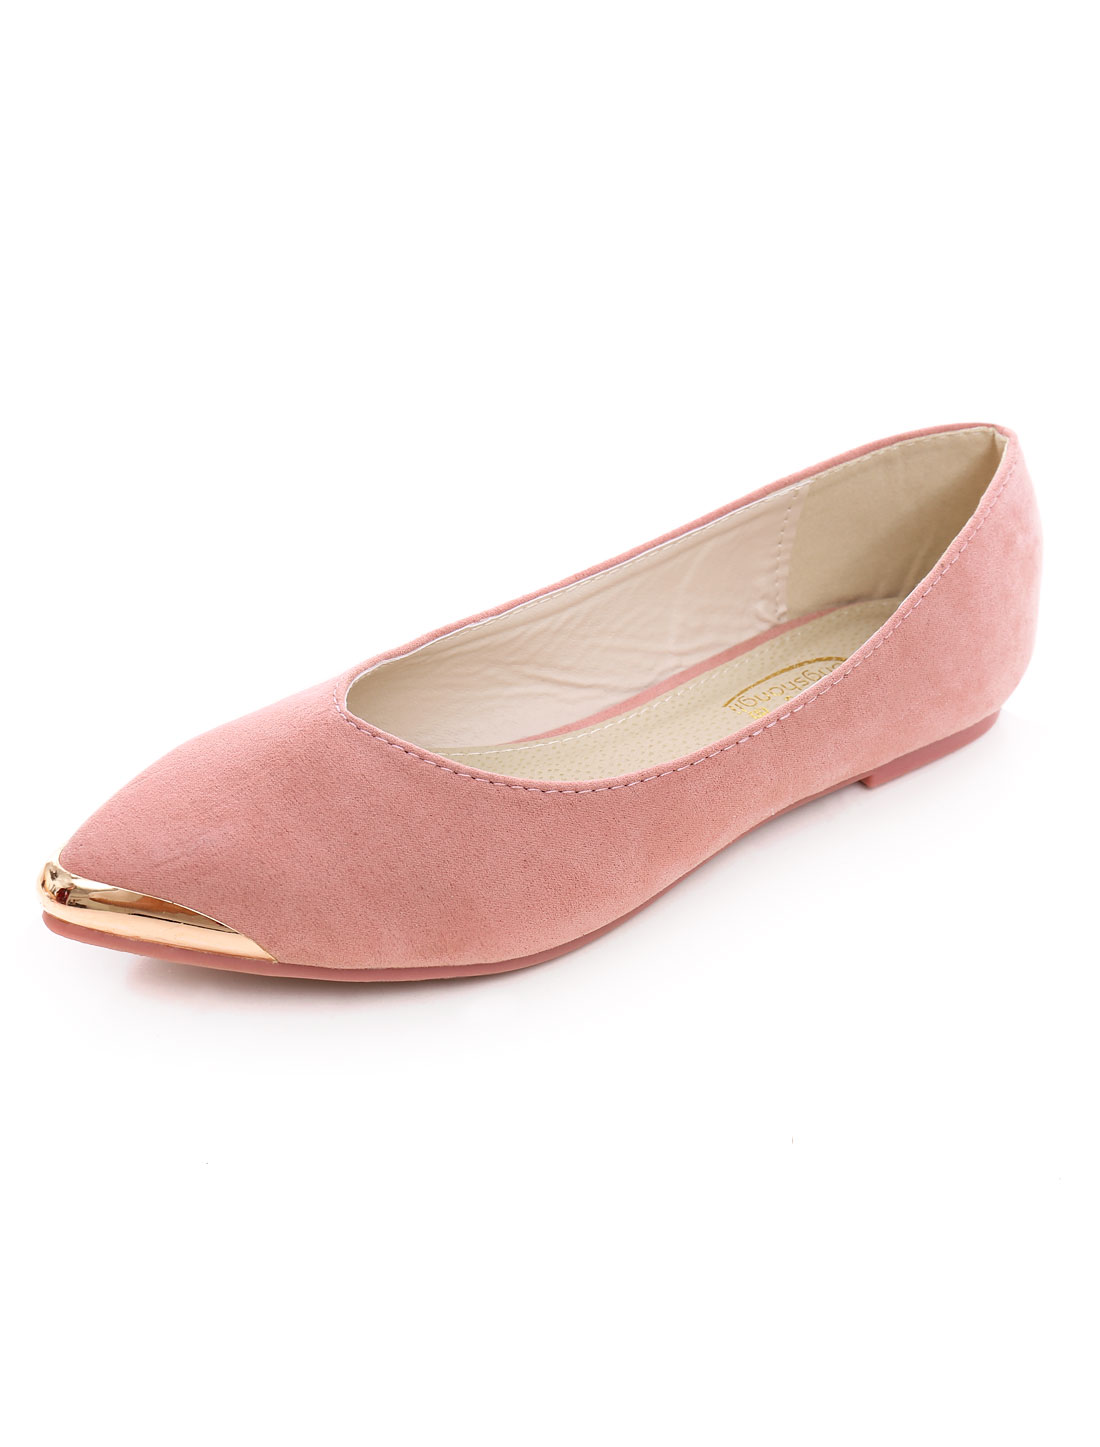 Woman Metallic Embellished Toe Faux Suede Pointed Flats Peach US 9-9.5